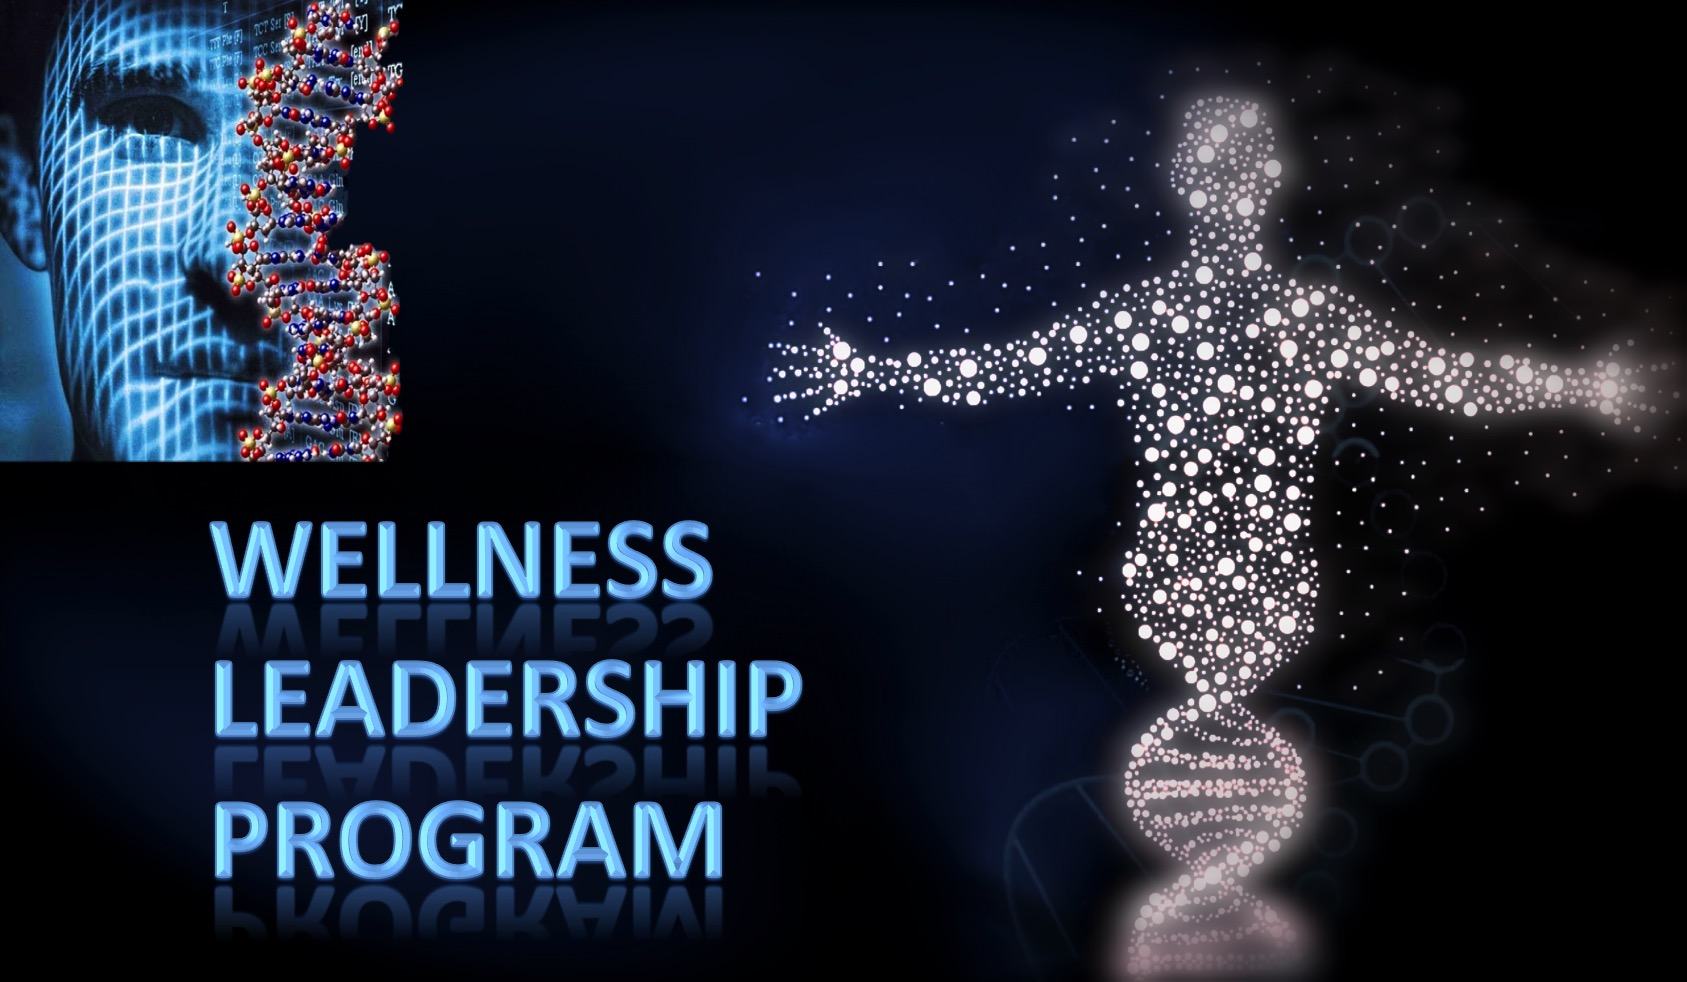 wellness leadership program